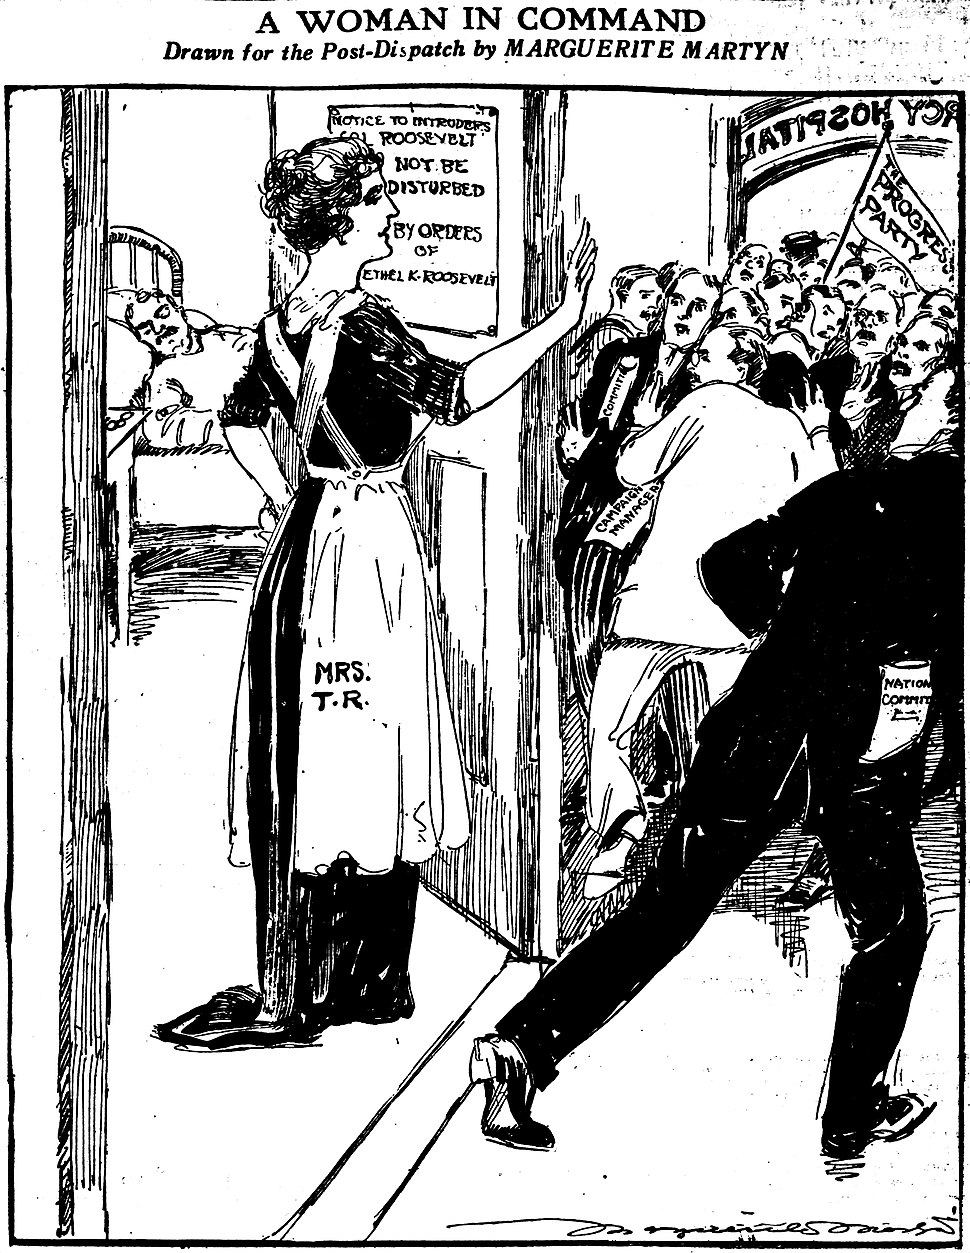 Cartoon by Marguerite Martyn portraying Edith Roosevelt guarding the door to Theodore Roosevelts room